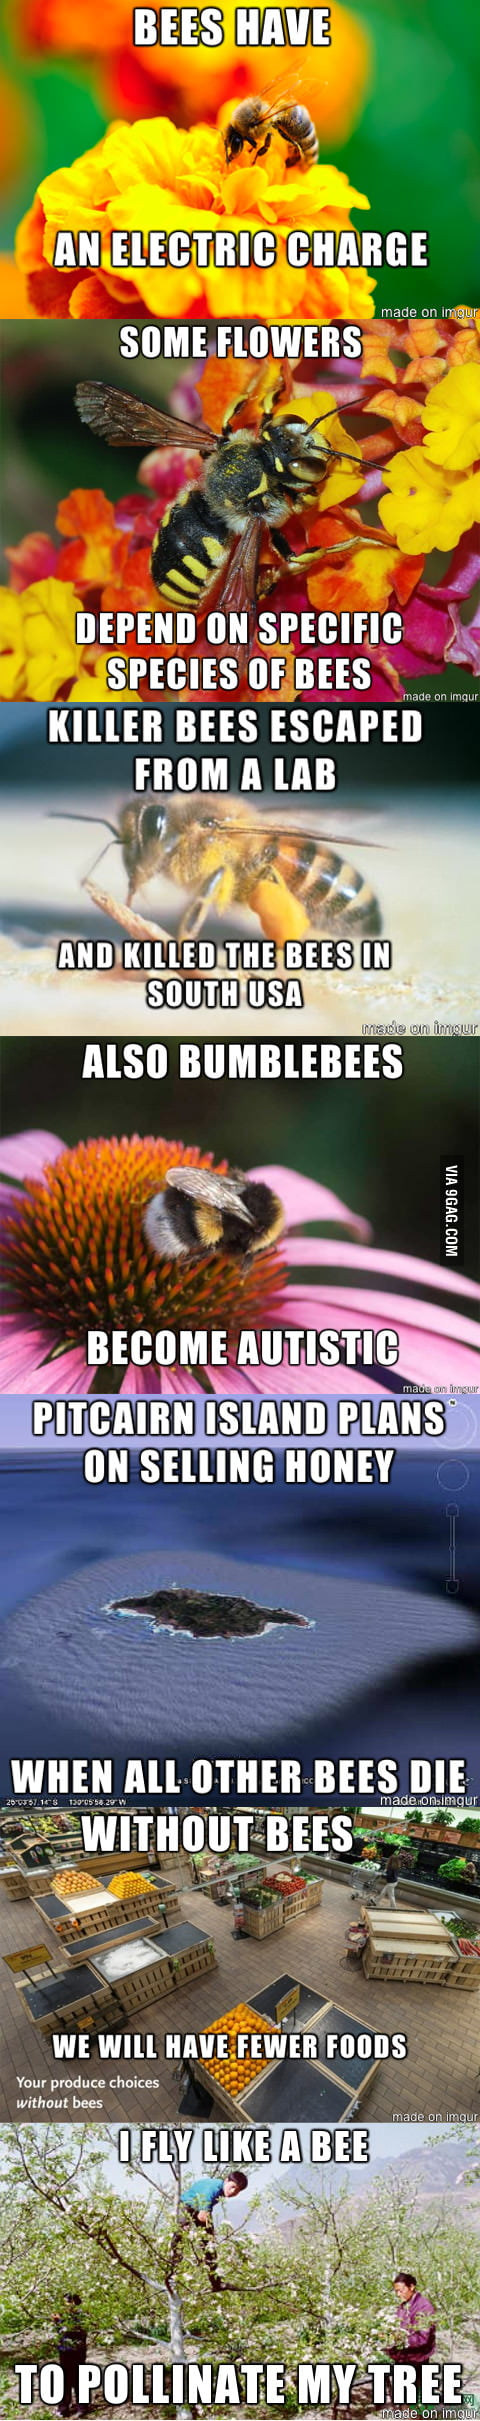 In China bees are already extinct...